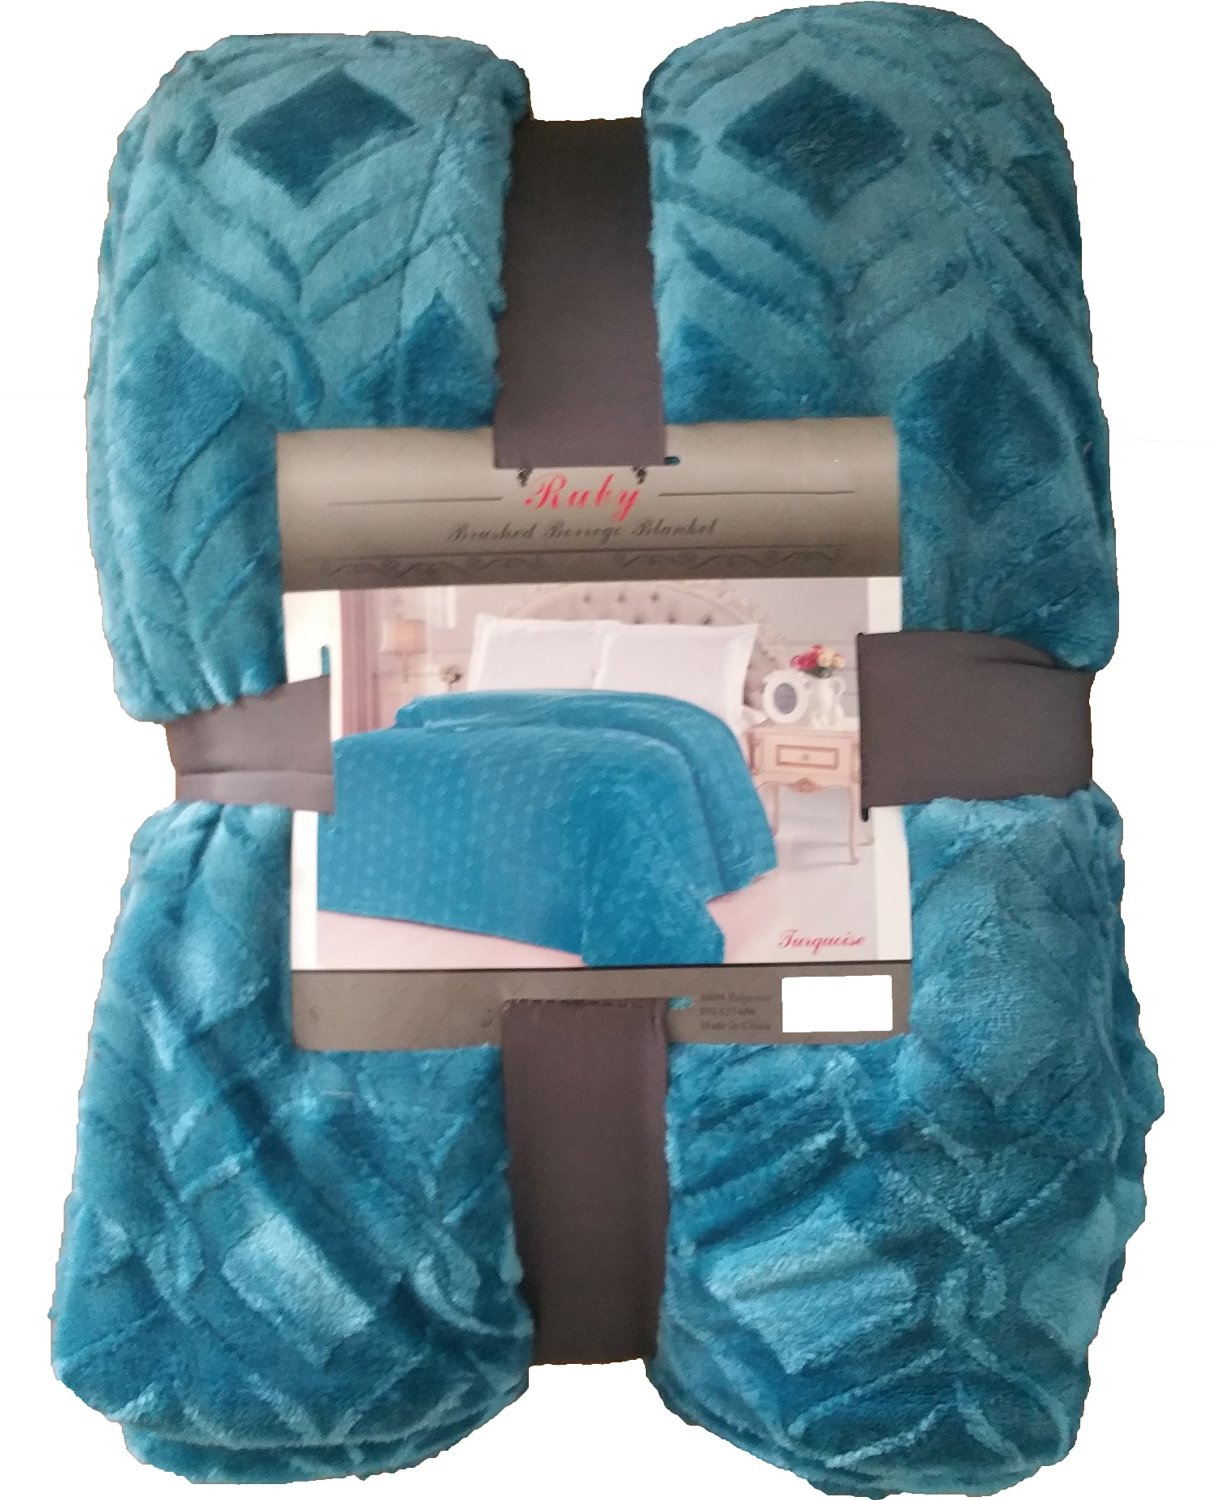 Fancy Collection Queen/king Size Embossed Blanket Sumptuously Soft Plush Solid Turqouise with Sherpa Revirsable Winter Blankets Bedspread Super Soft New